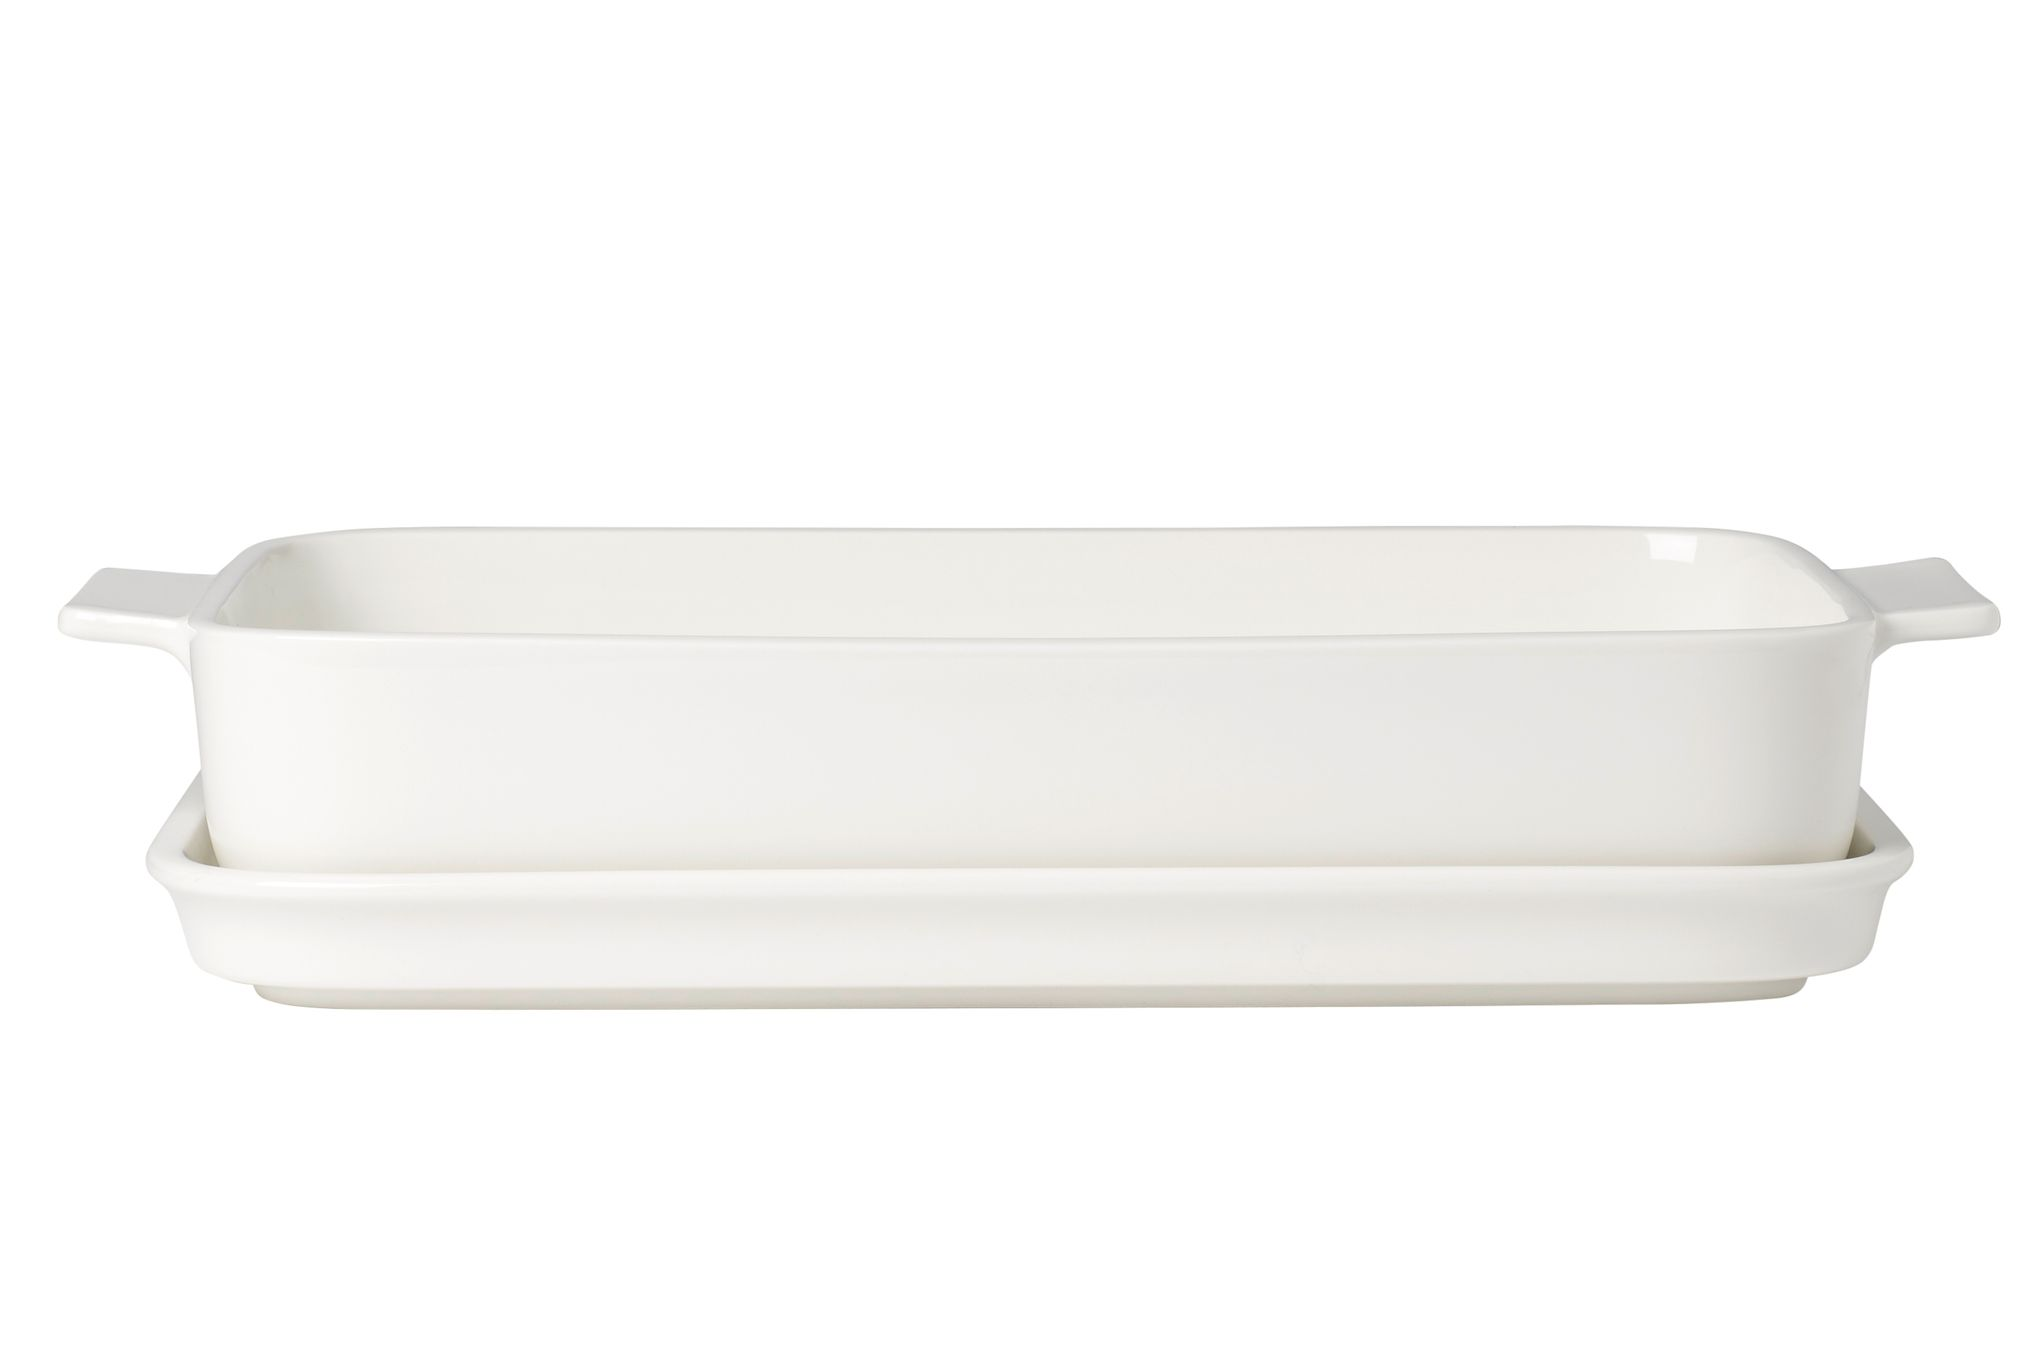 Villeroy & Boch Clever Cooking Baking Dish With lid 30 x 20cm thumb 1